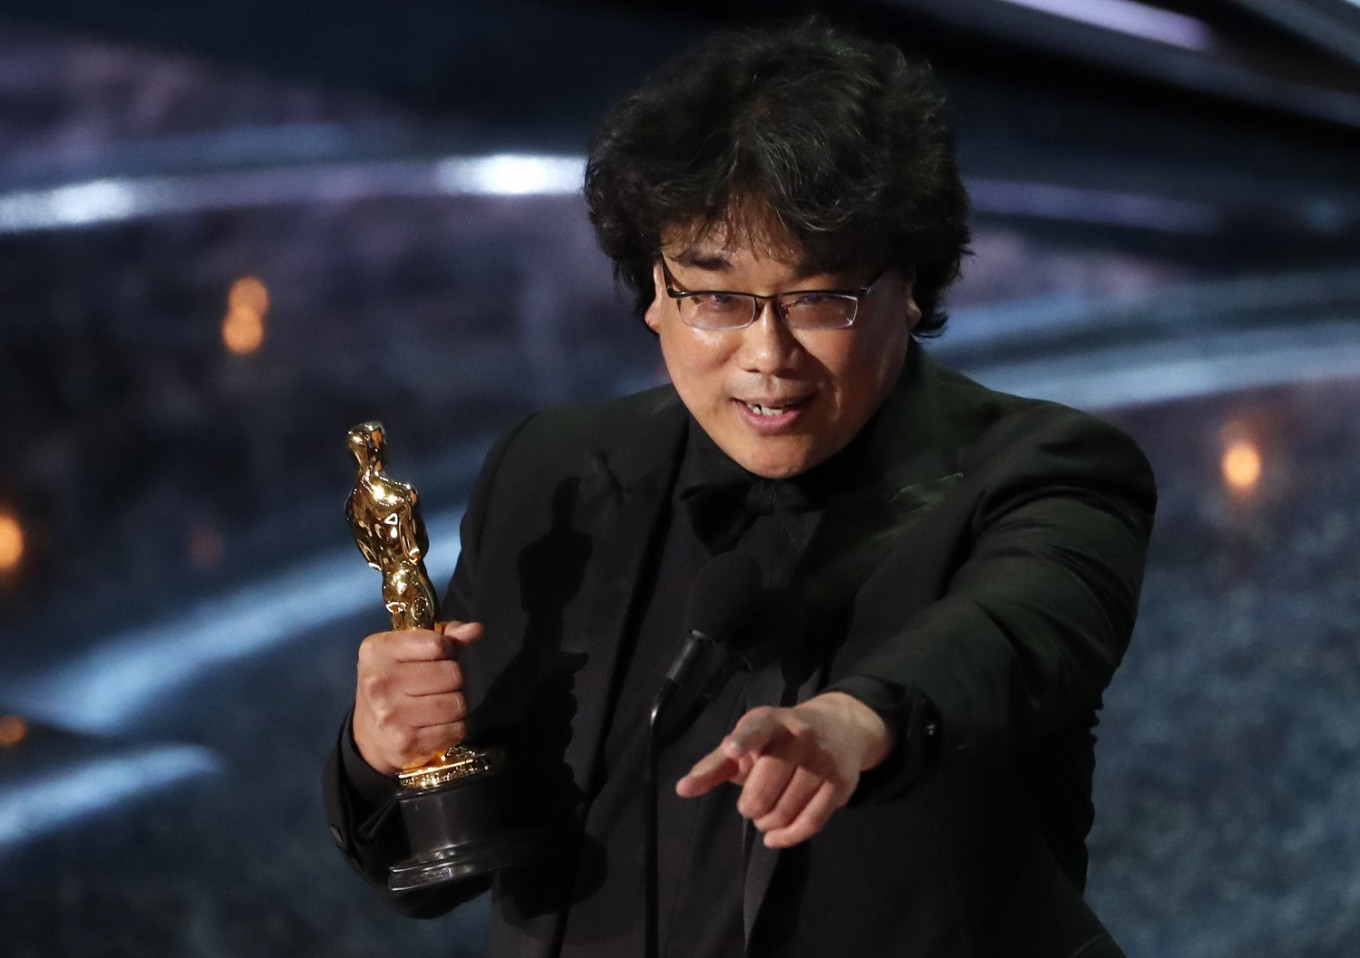 Oscar-winning Bong Joon-ho's films to be adapted into English TV series